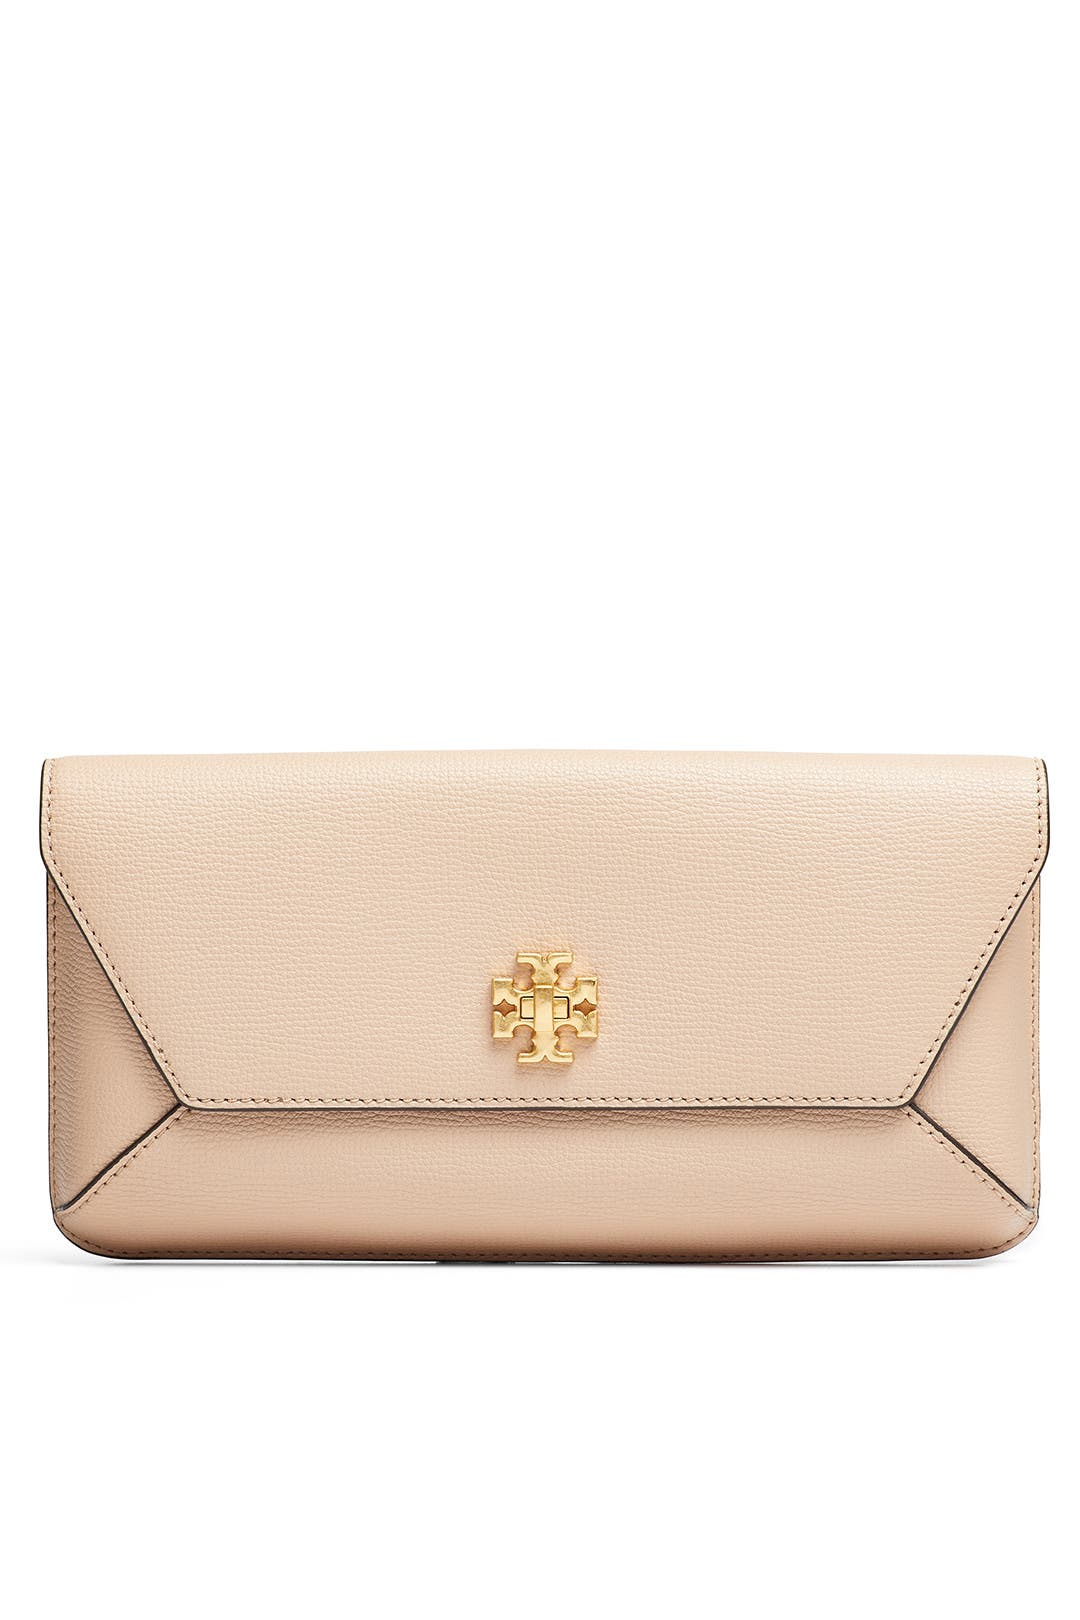 Handbags Tory Burch Accessories Great Selection And Prices For Fleming Geometric Clutch Beige Sand Kira Envelope